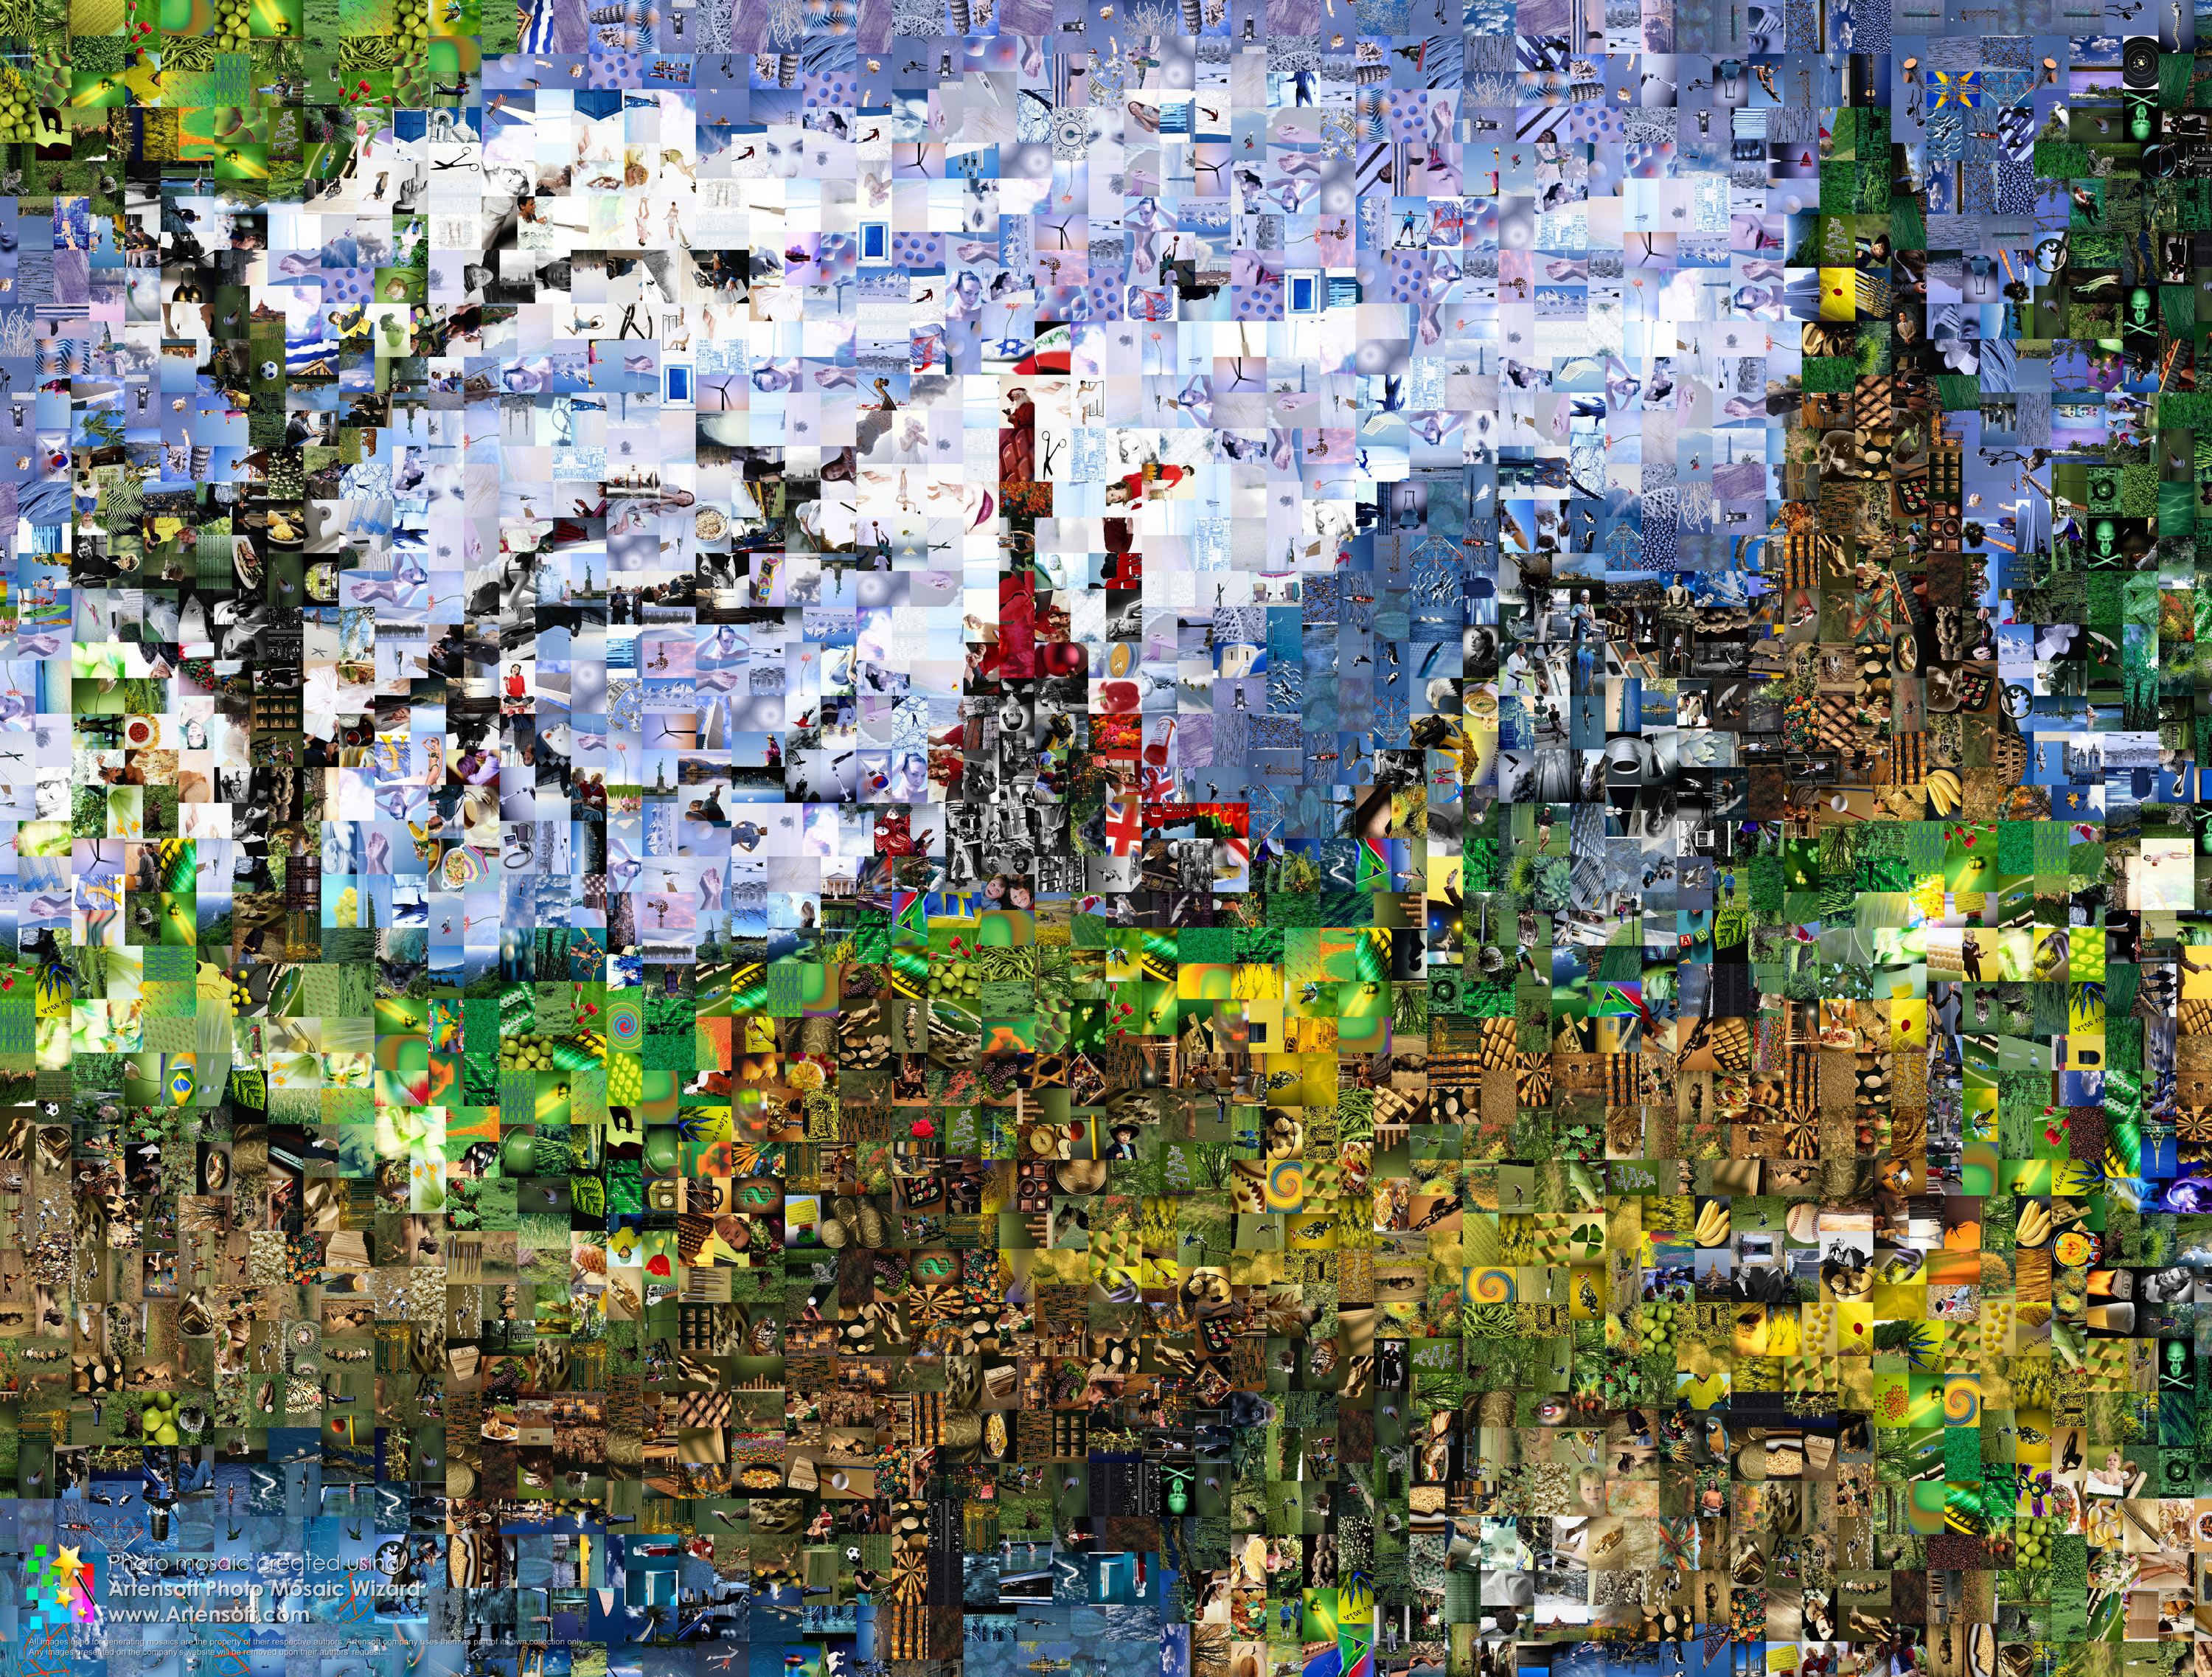 2000 Pieces Photo Mosaic Photomosaic Download Full Size Extra Large Photographic Here 12400x9400 Pixels 25Mb